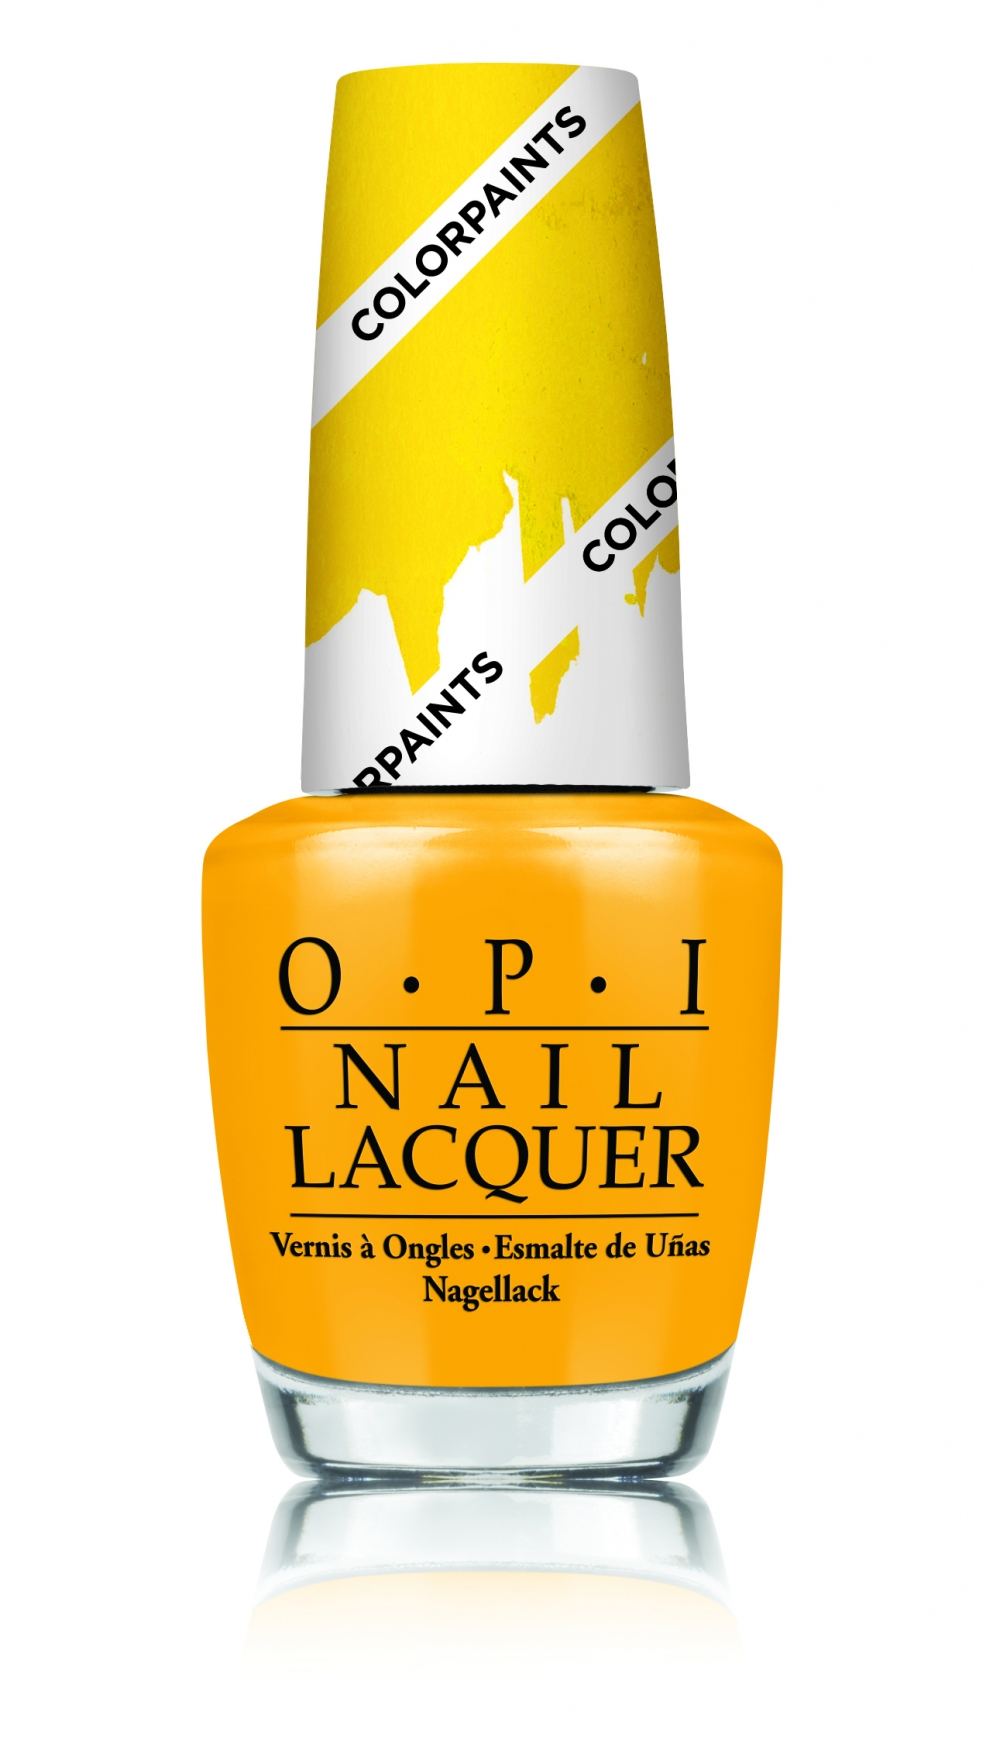 OPI To Debut ColorPaints